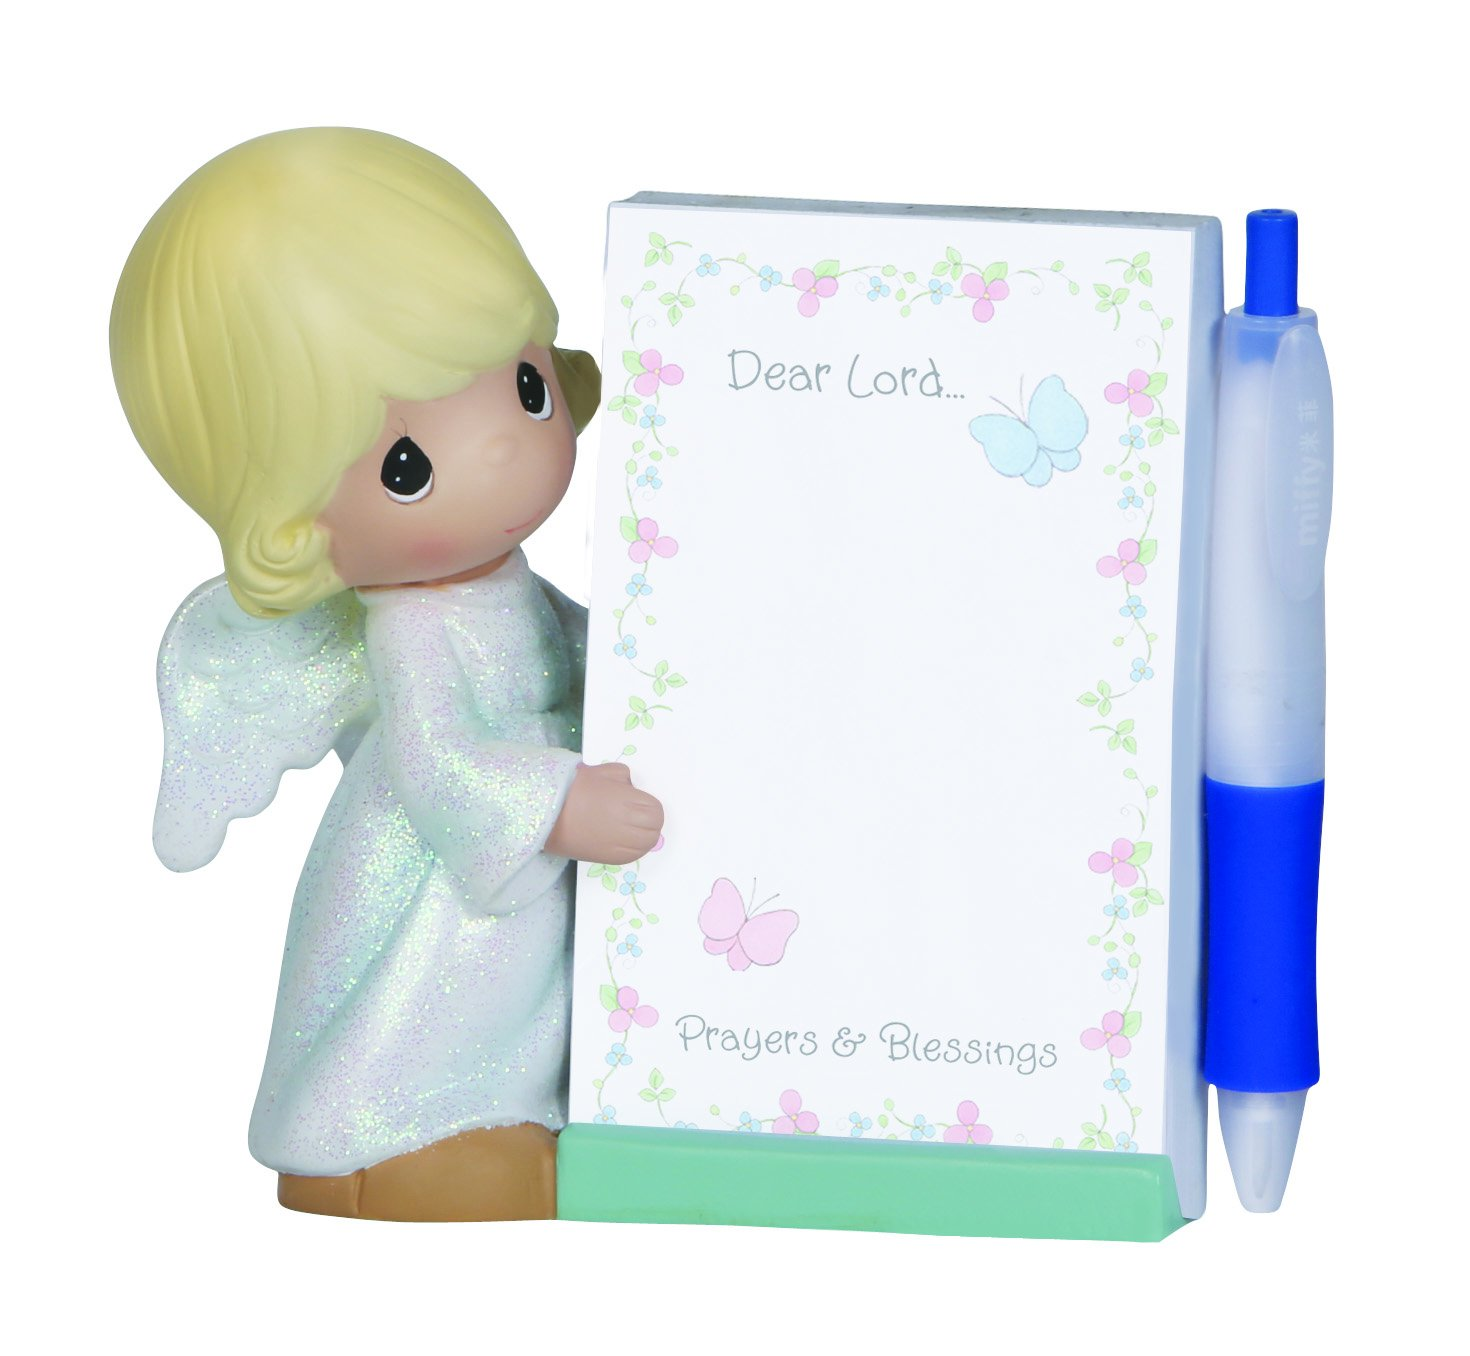 Precious Moments Angel Figurine with Notepad and Pen, Set of 3